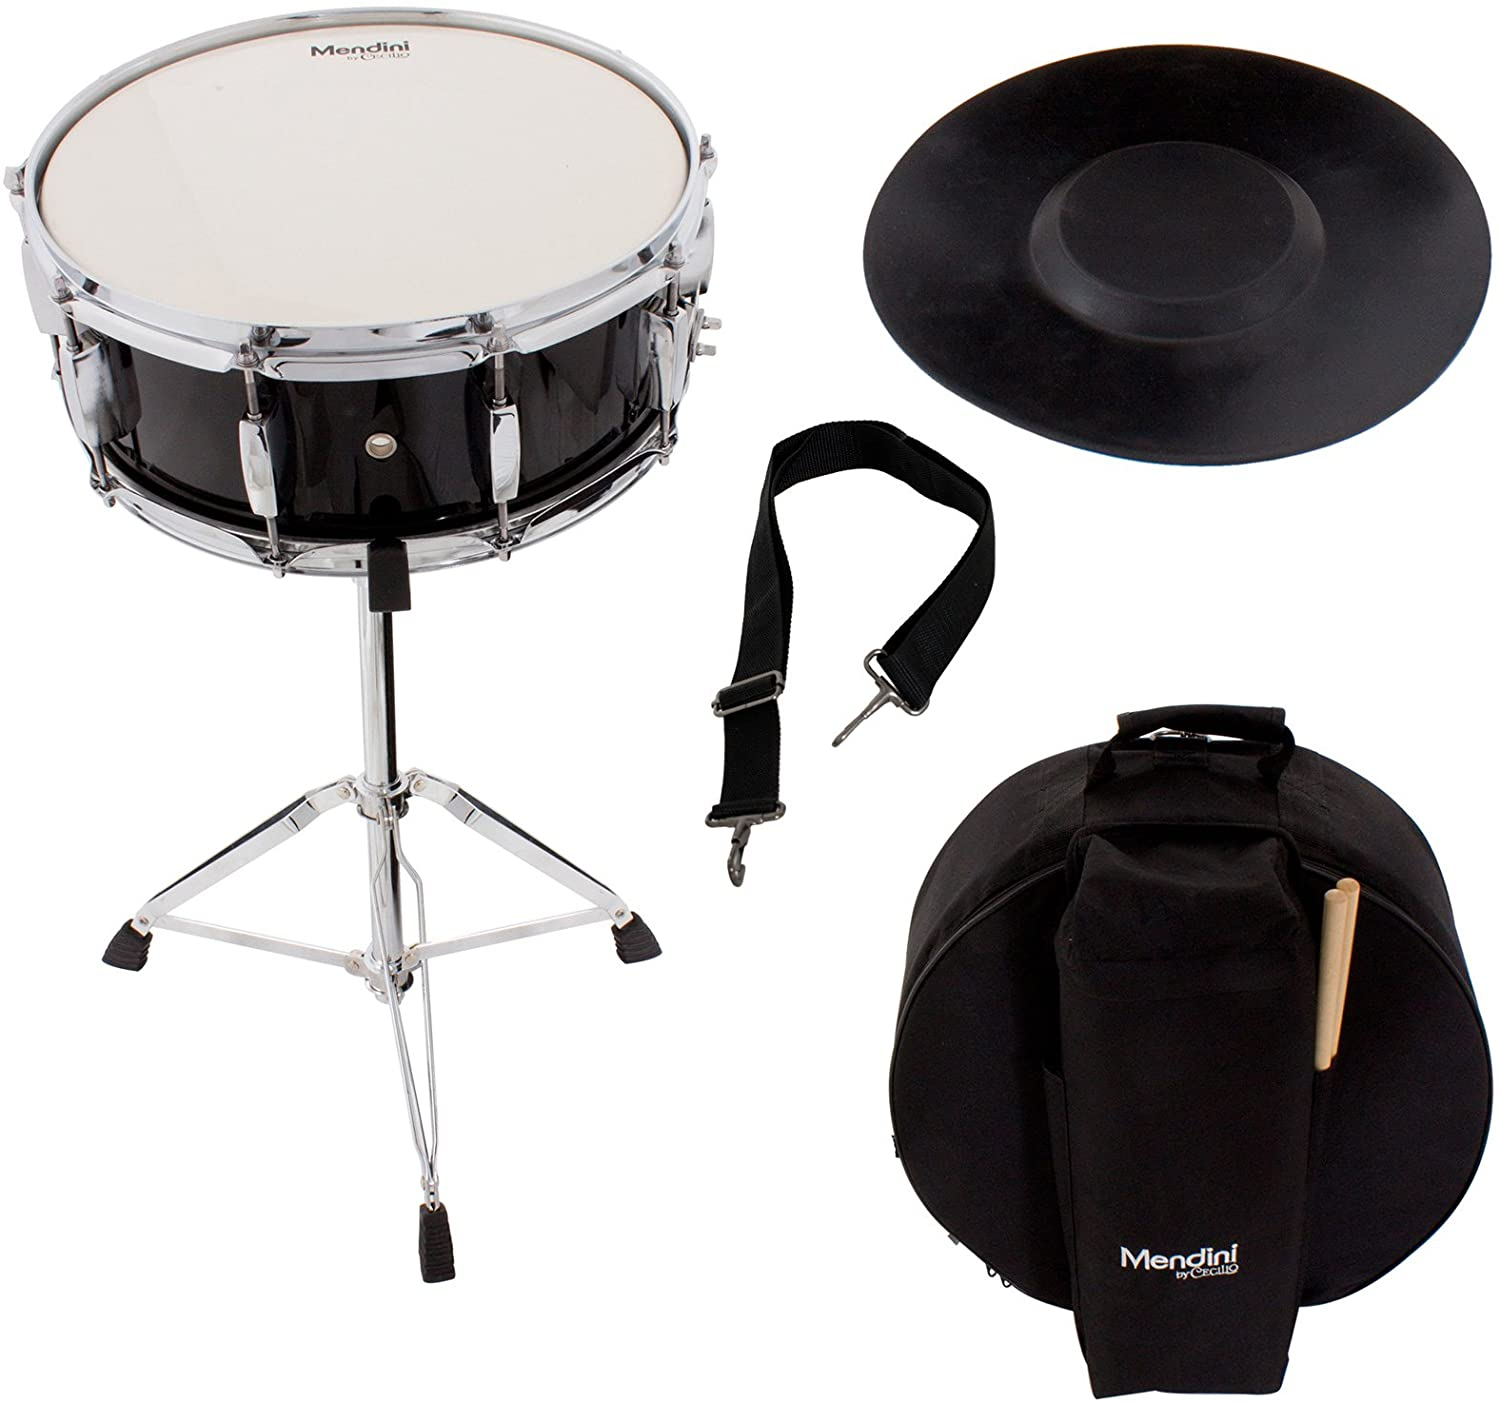 Mendini Student Snare Drum Set with Gig Bag, Sticks, Stand | Gammon Drum Sets